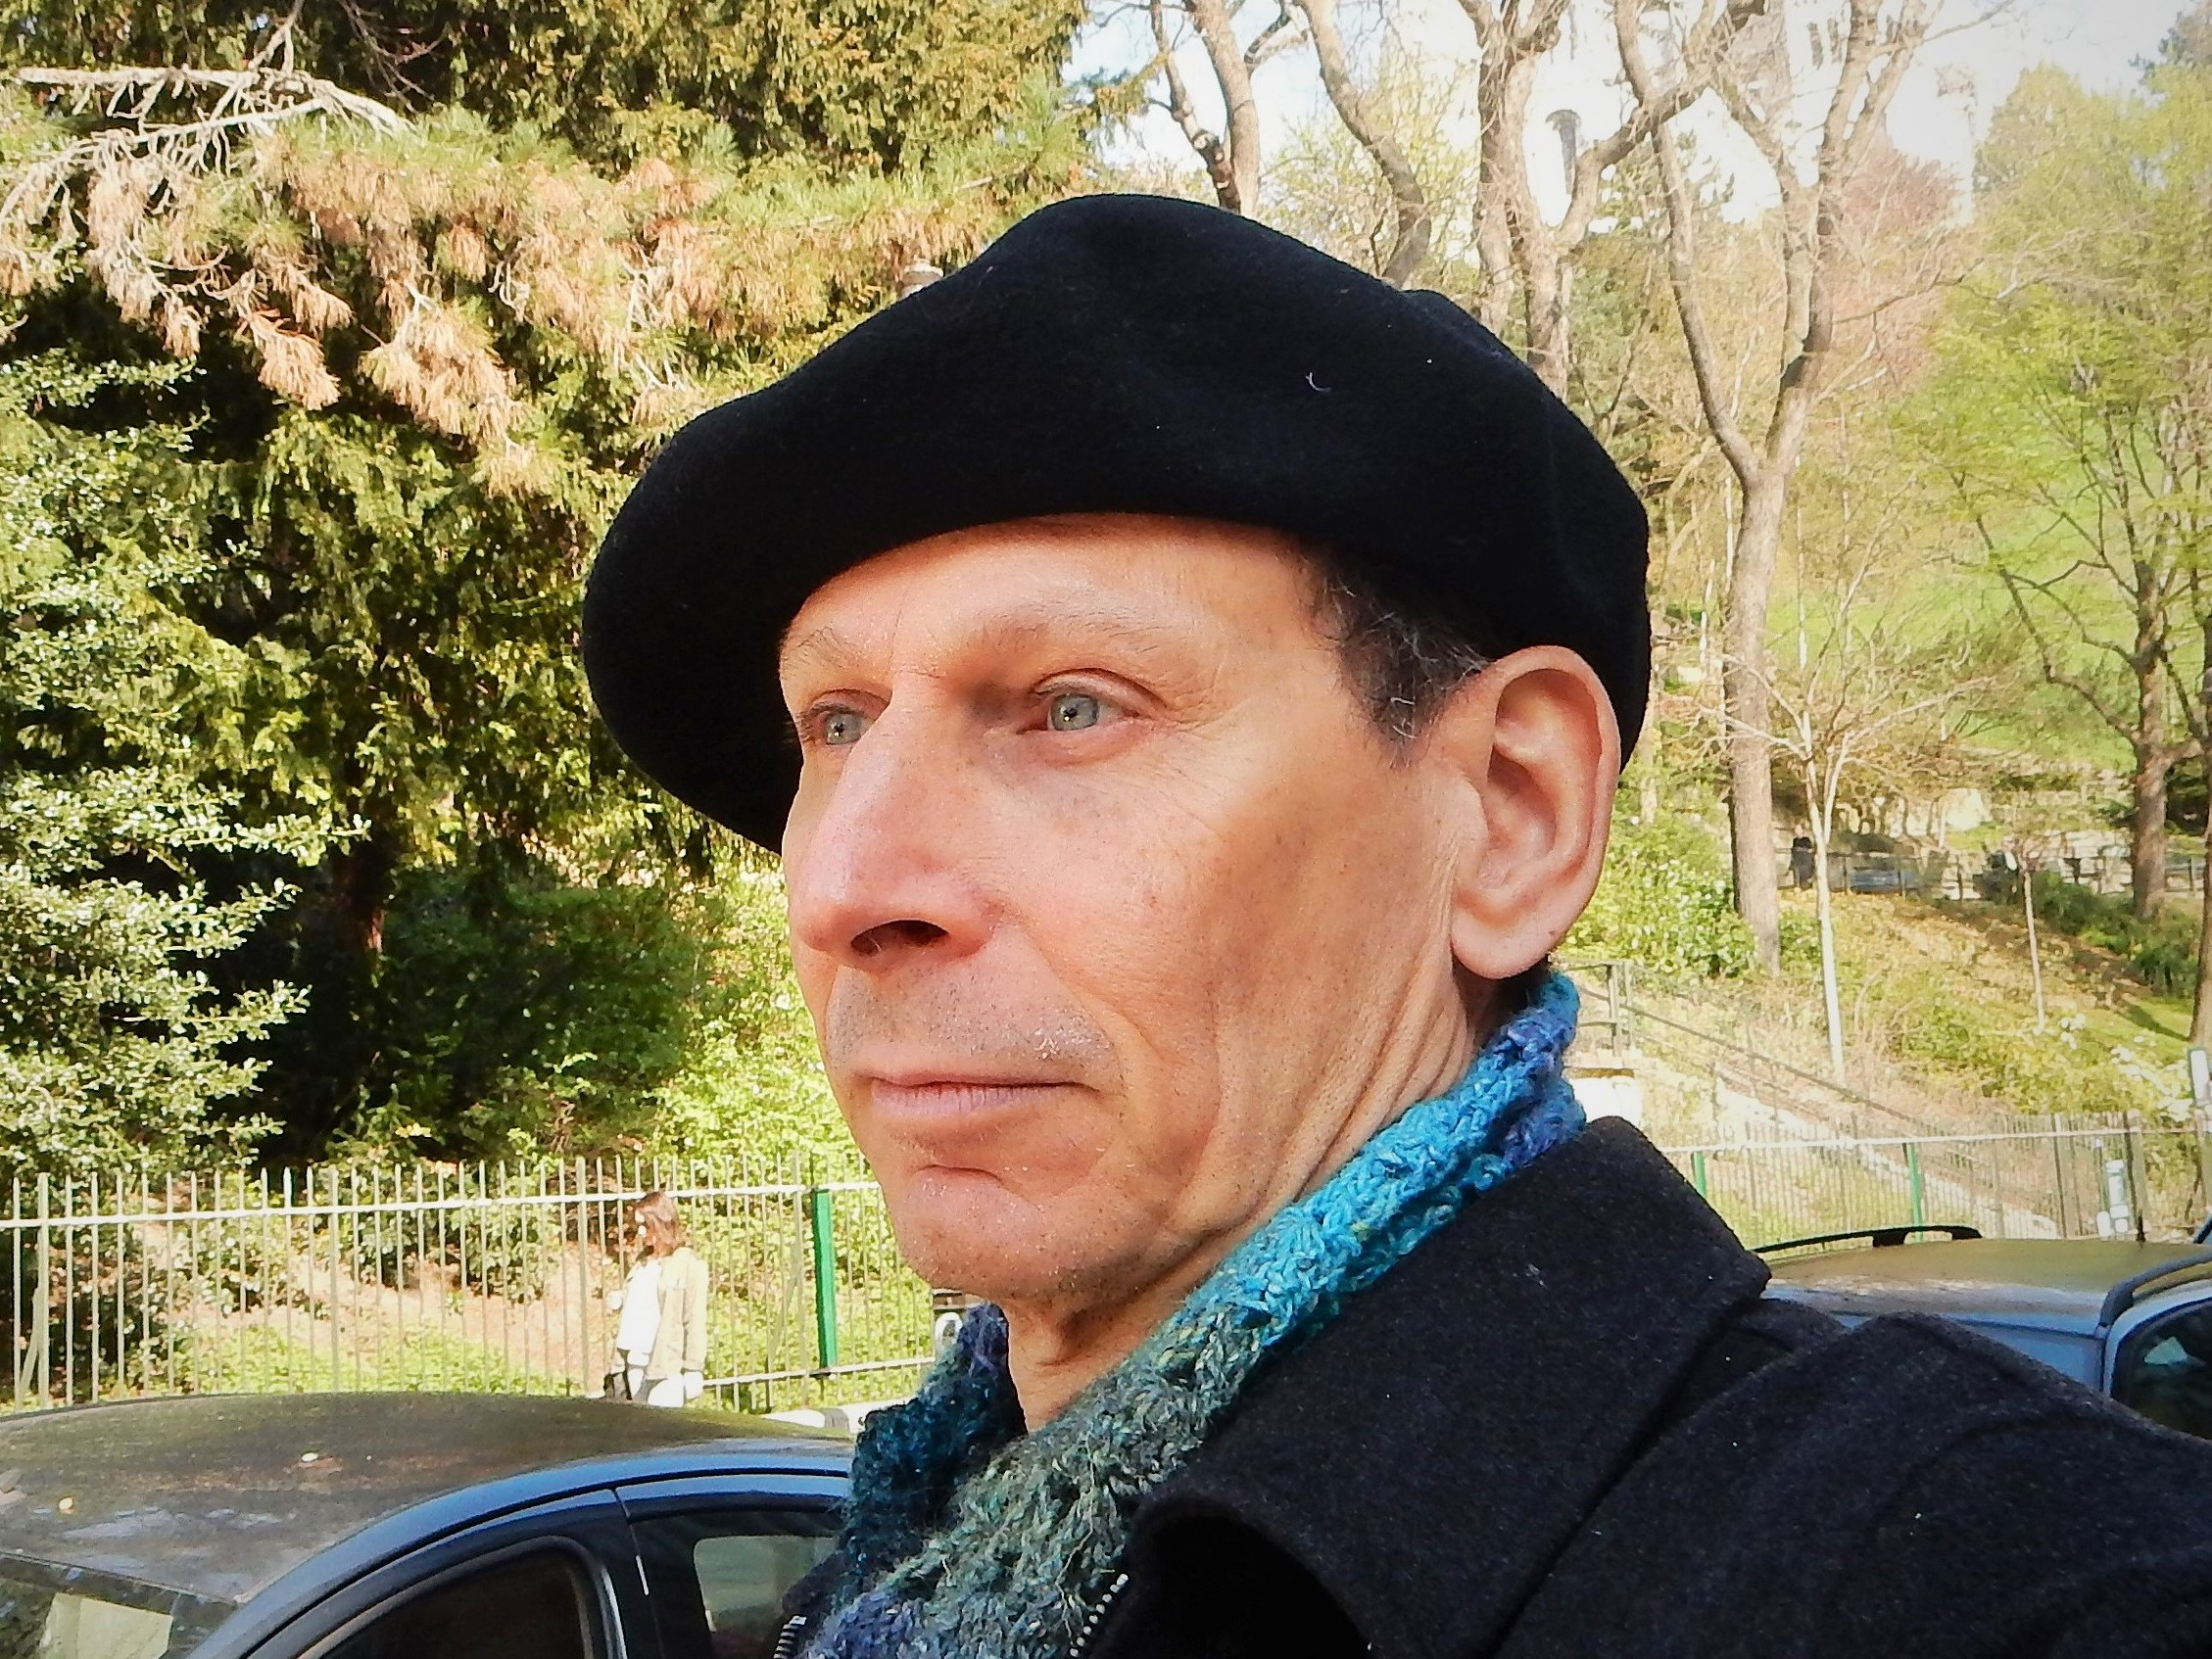 In Paris, April 12, 2015.JPG